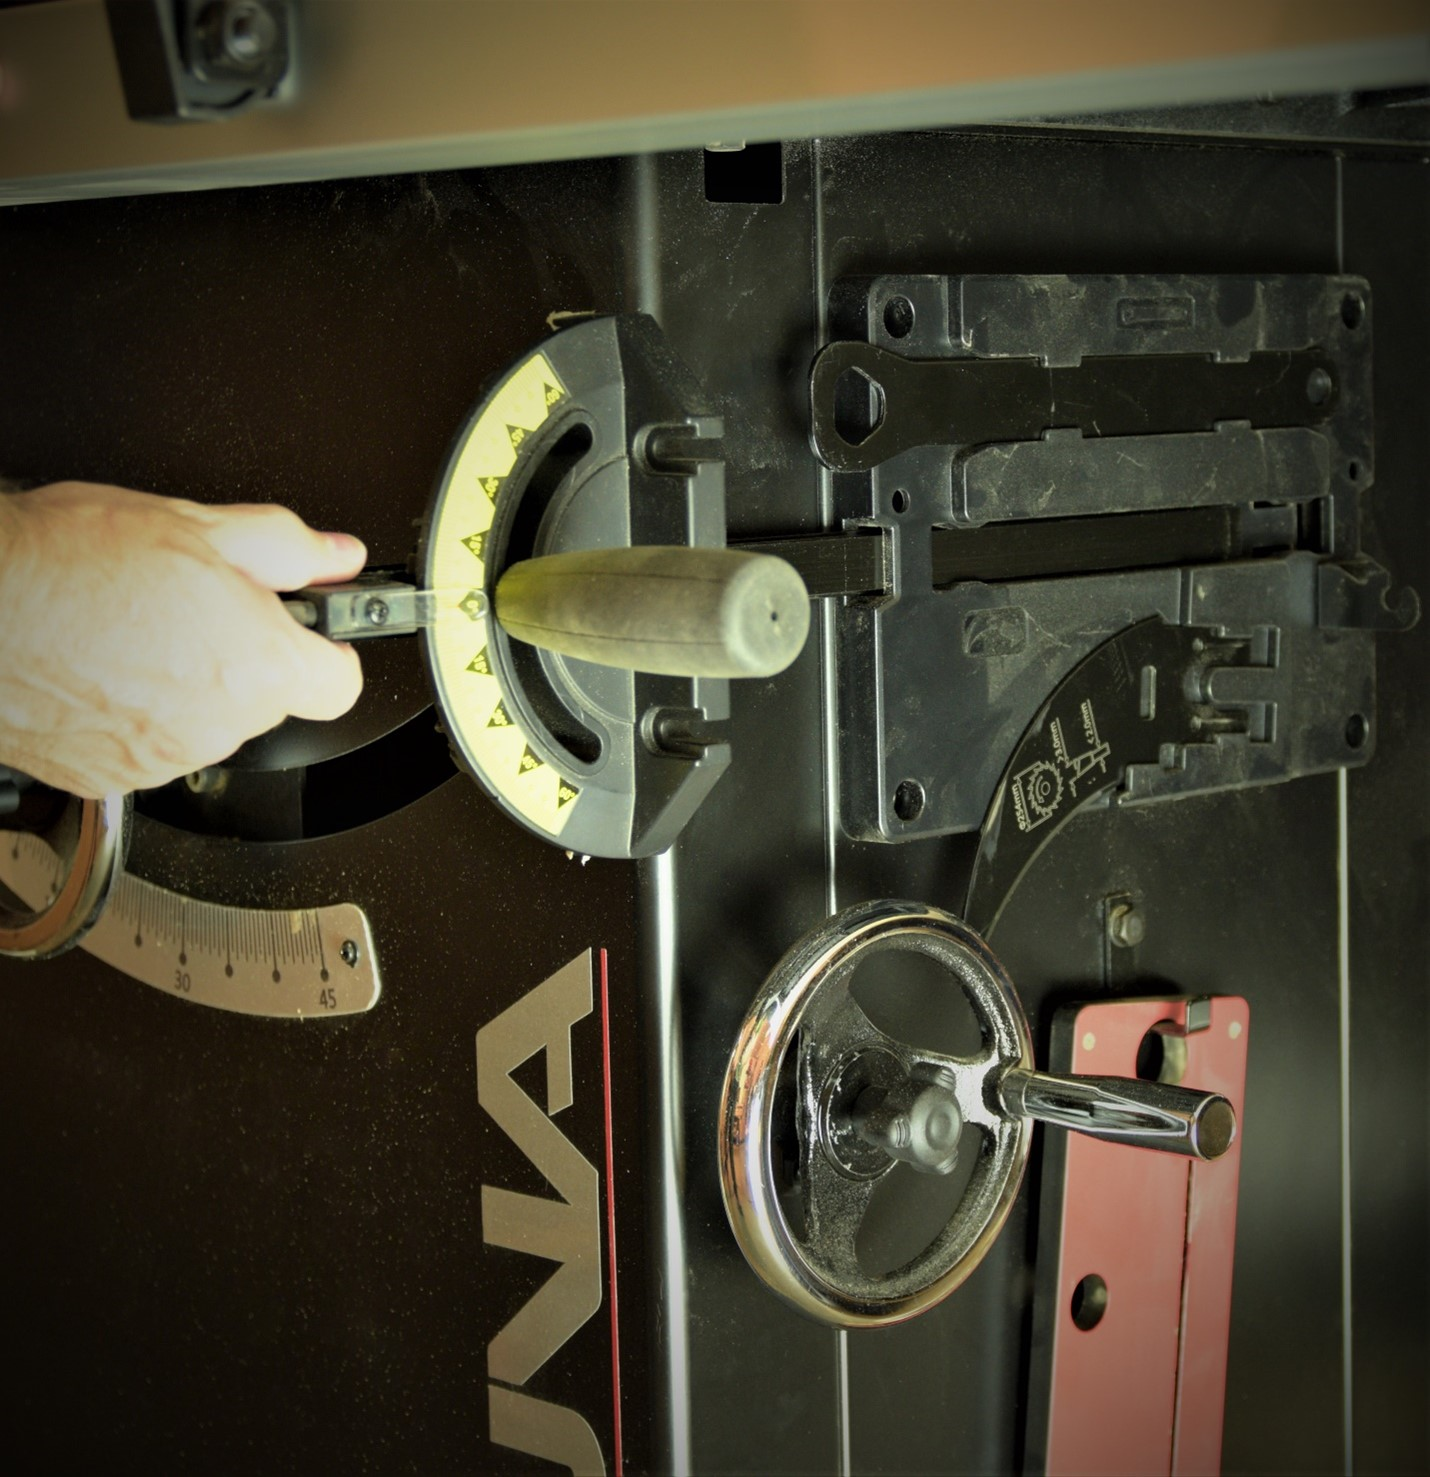 storing the blade wrench on the fusion tablesaw cabinet